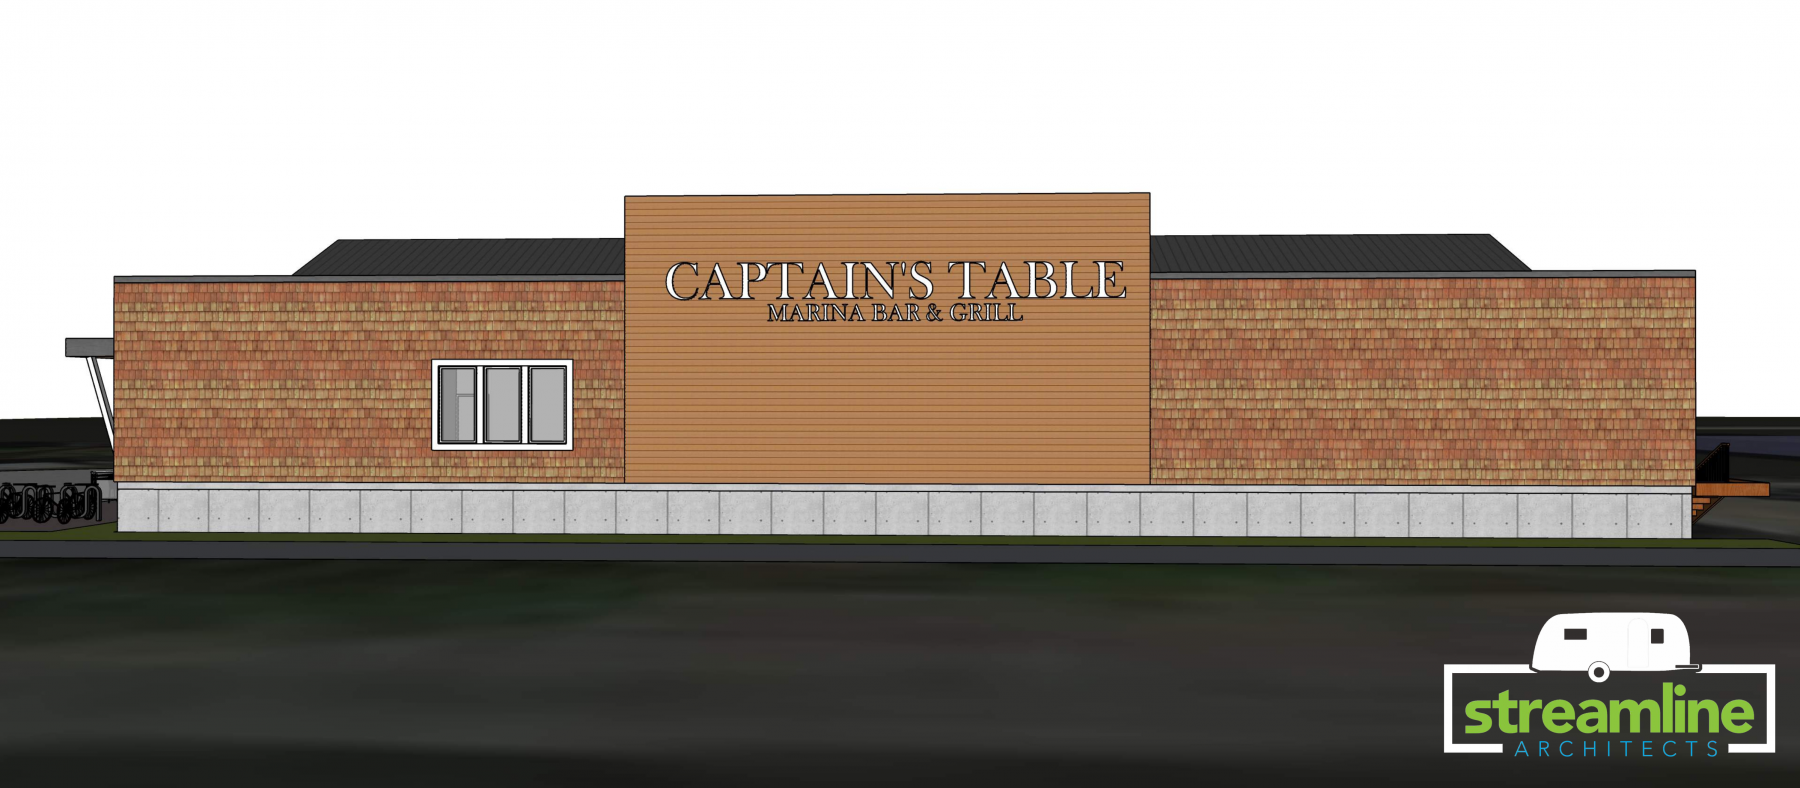 CAPTAINS-TABLE-RENDERINGS-10-31-18-Page-008